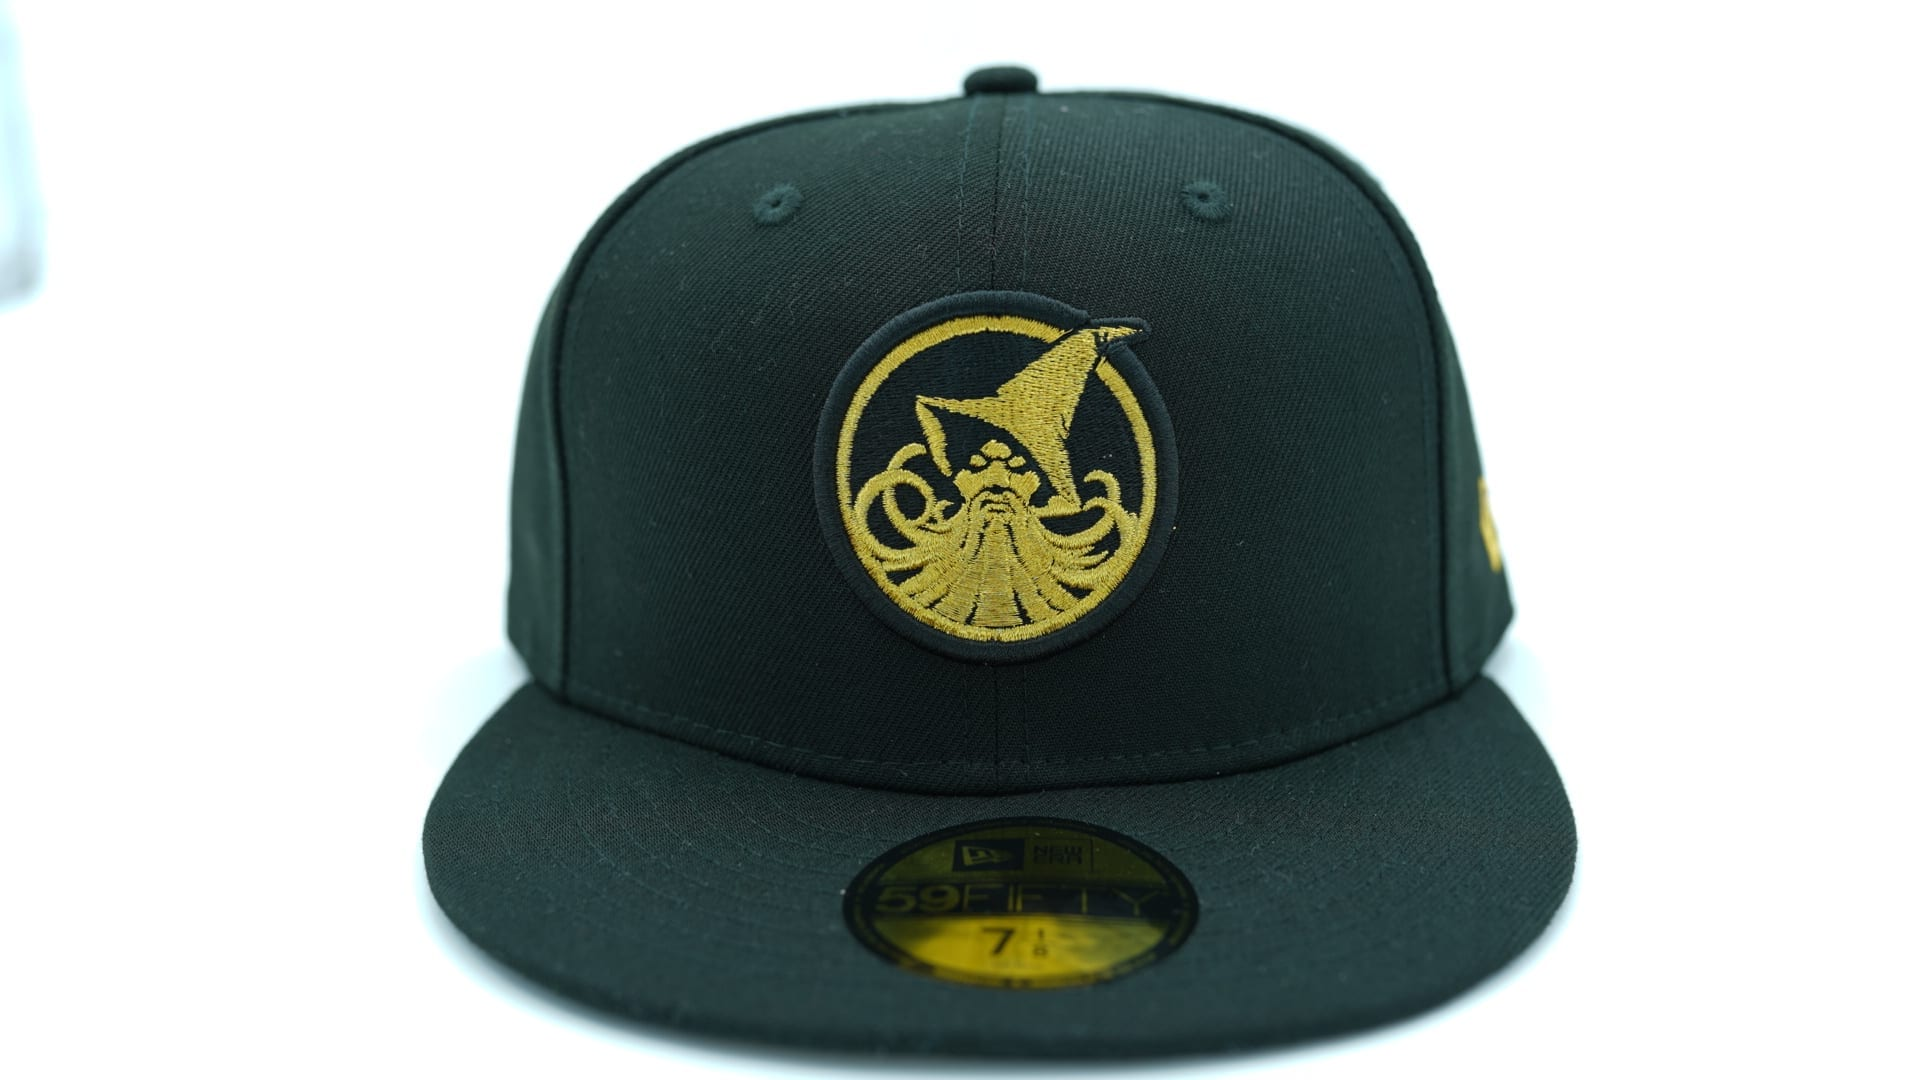 fd3aa9d3bb2 ... era blank 59fifty 854d2 49d22  order new erablank59fifty fitted  baseball caps strictly fitteds 75e72 81b53